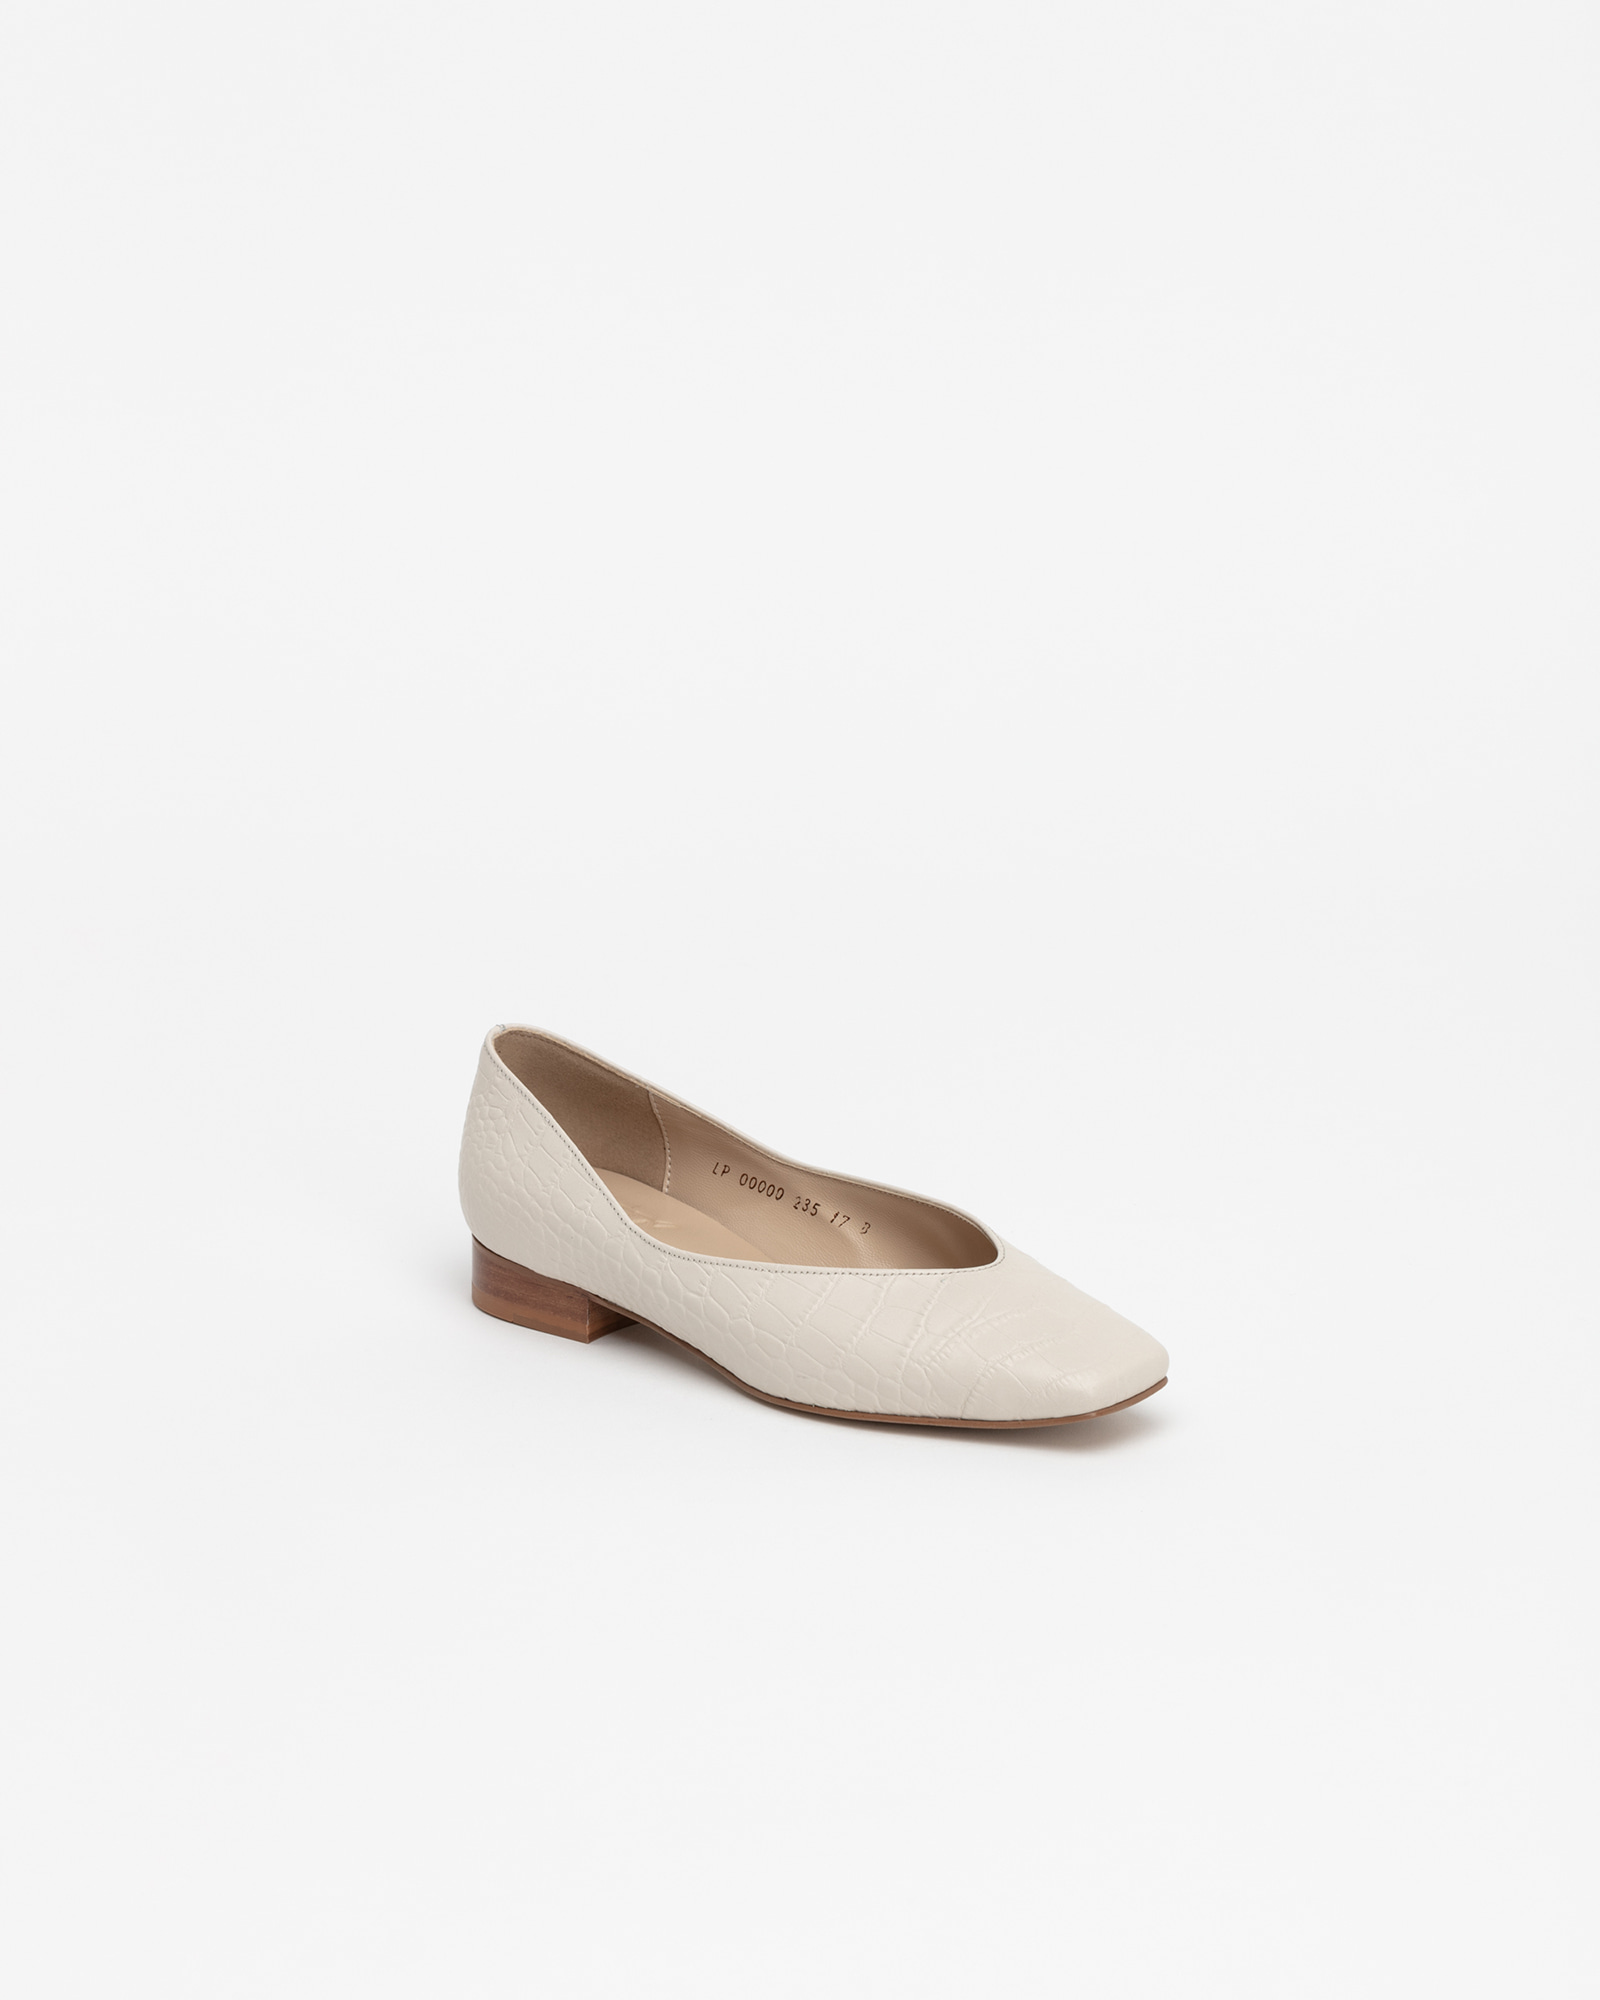 Purin Flat Shoes in Ivory Croco Prints